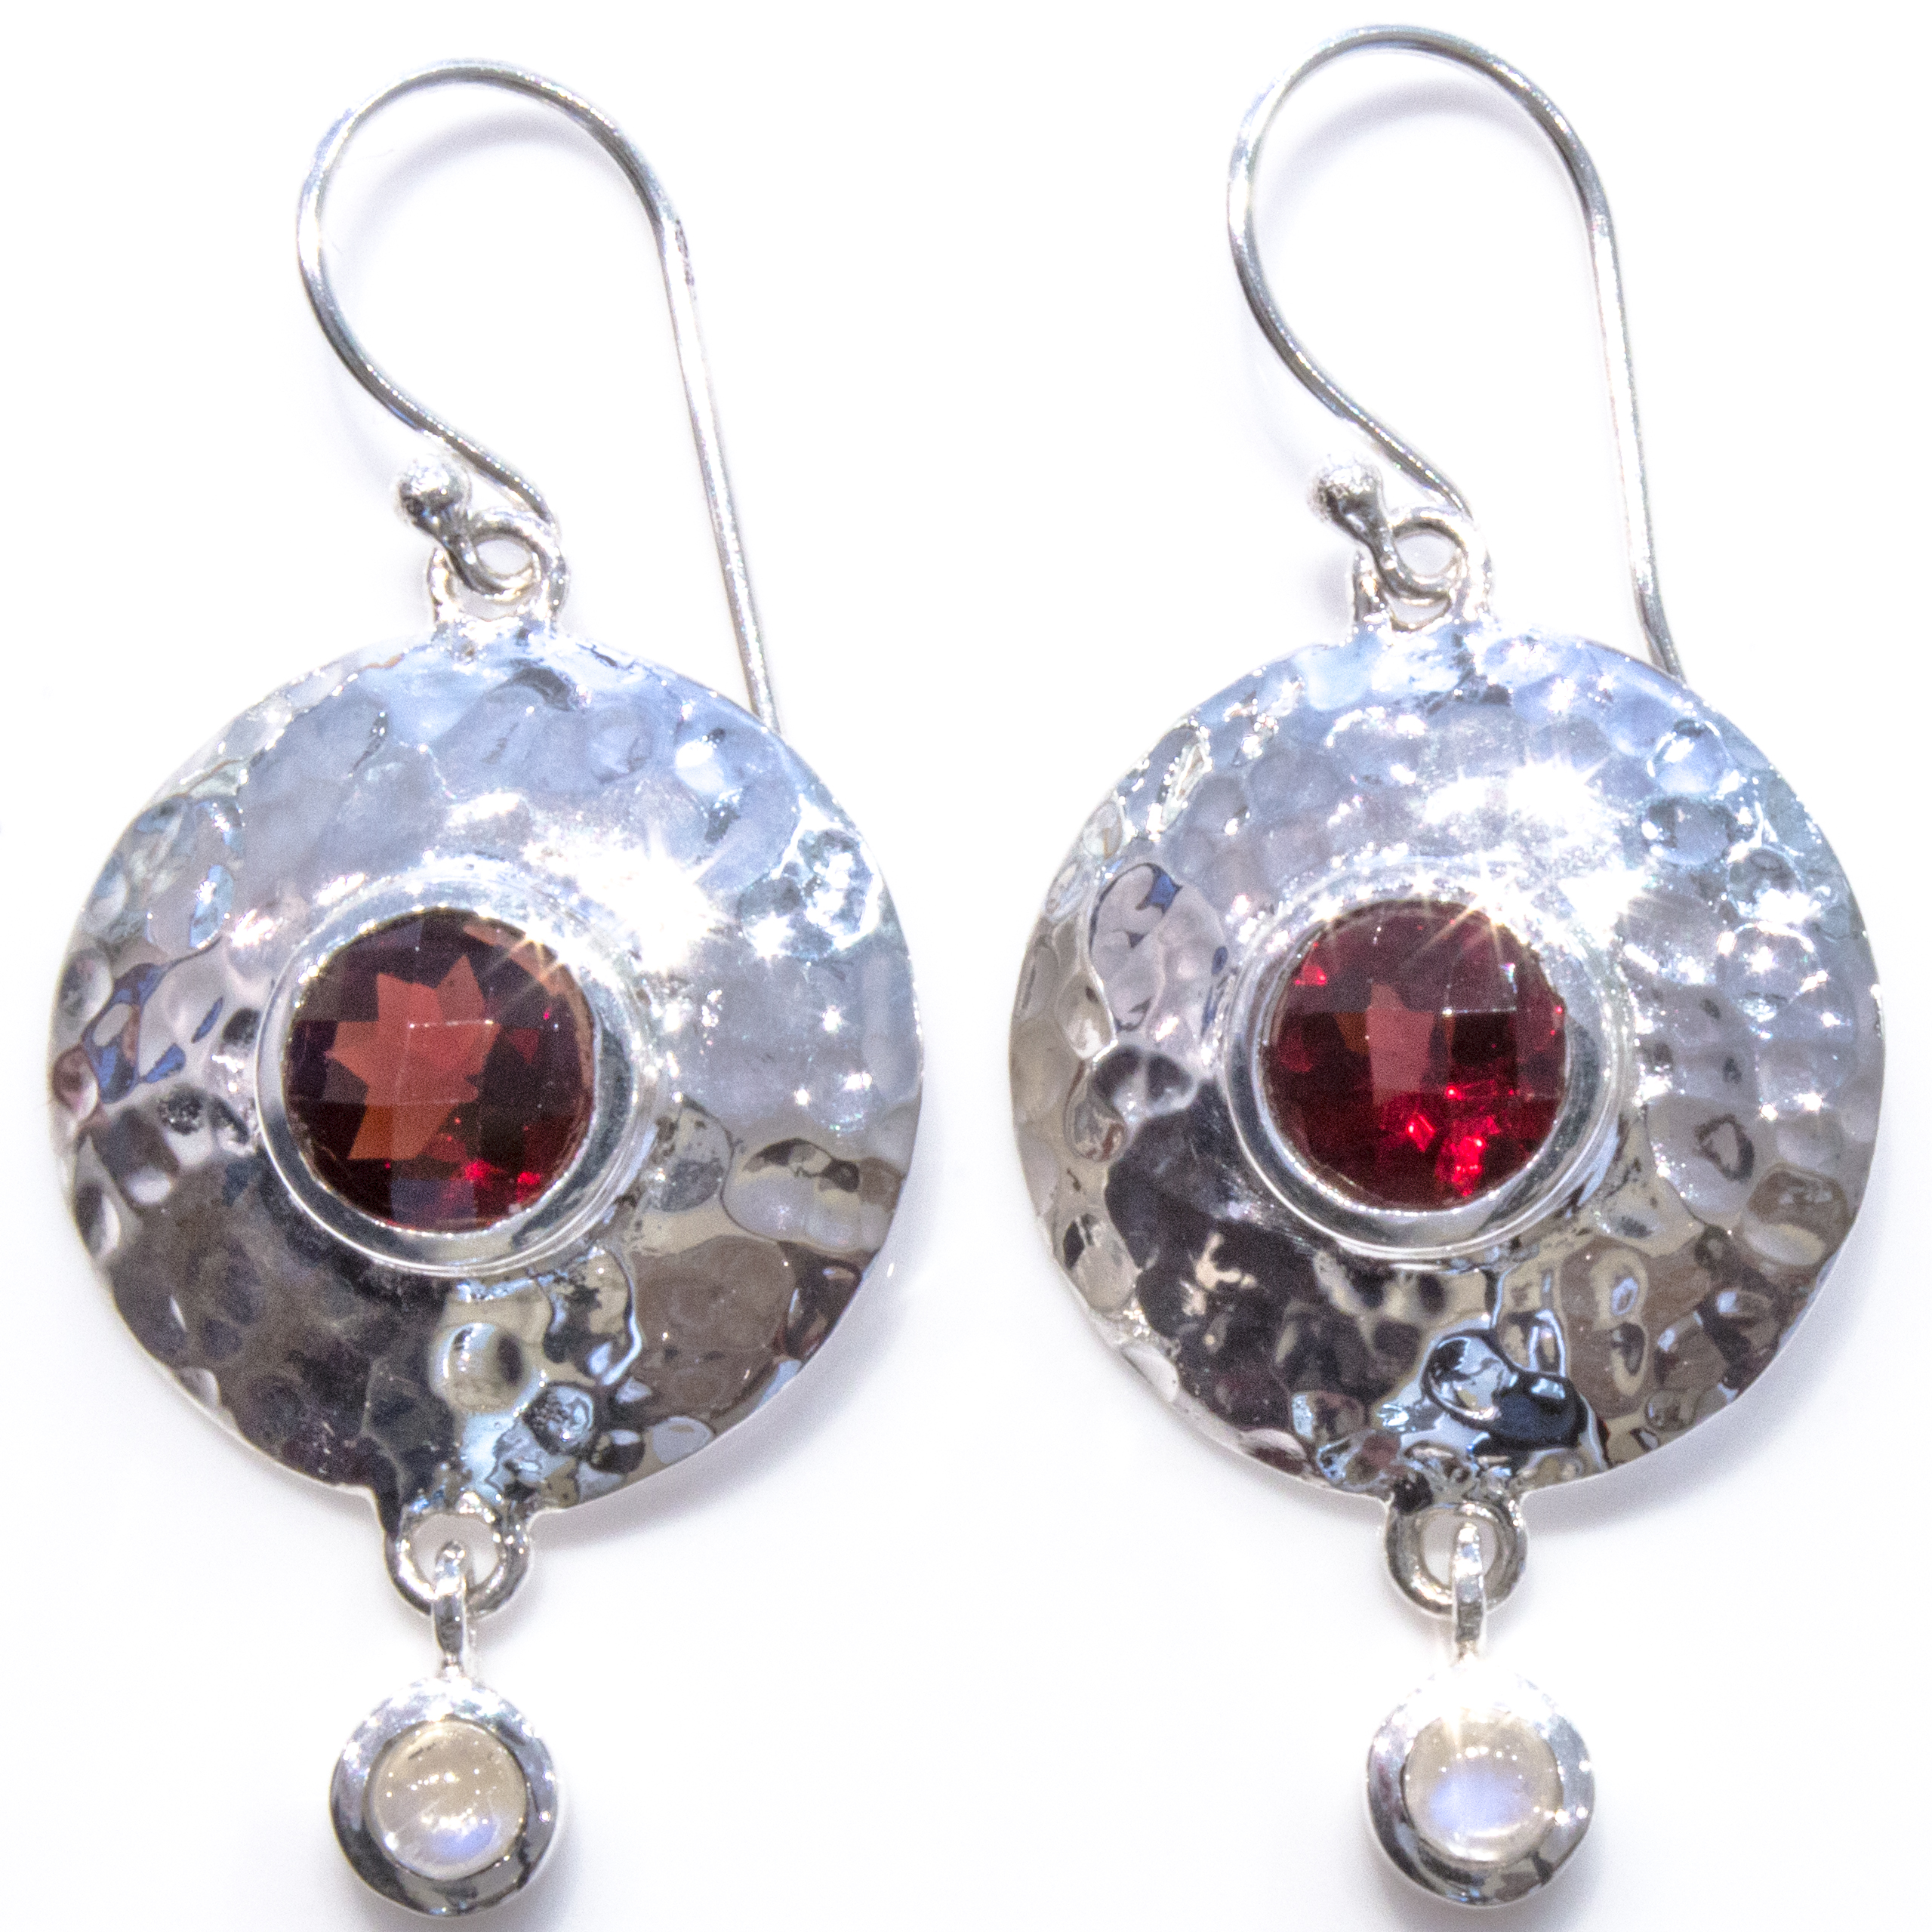 Garnet and Silver Contemporary Earrings